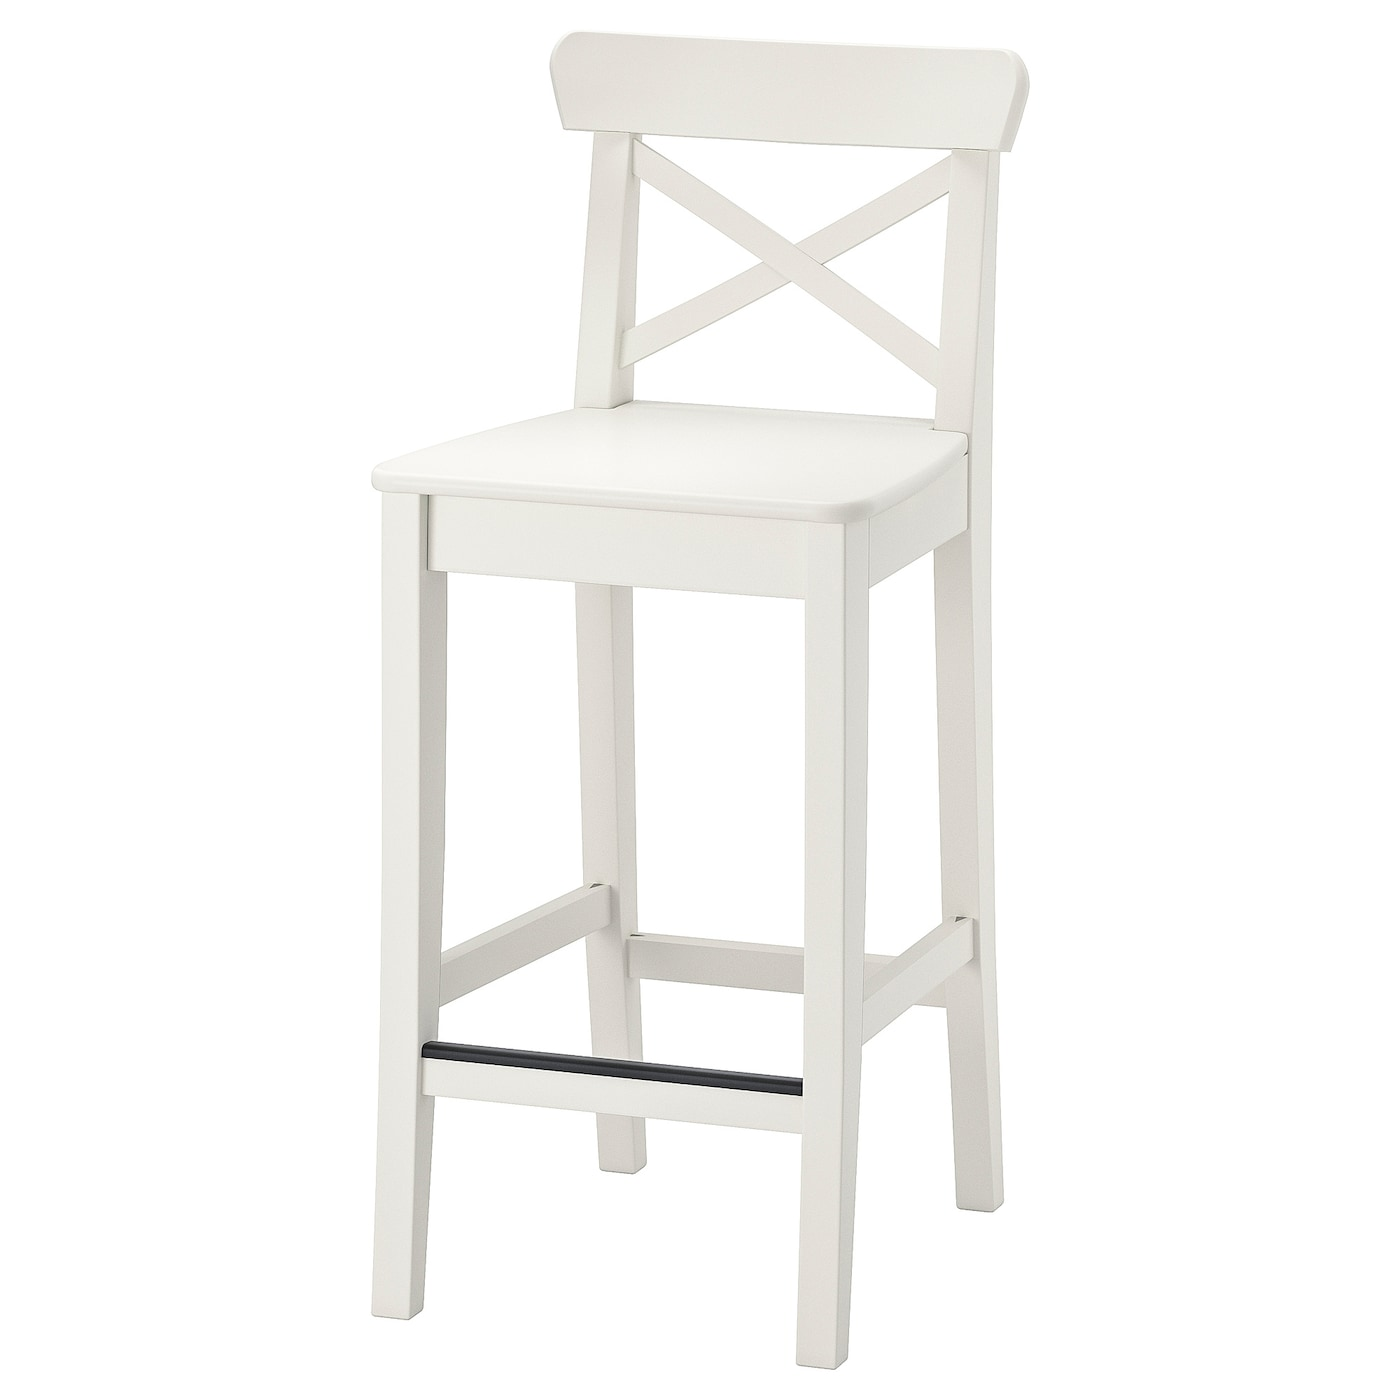 Ingolf Bar Stool With Backrest White 24 3 4 Ikea